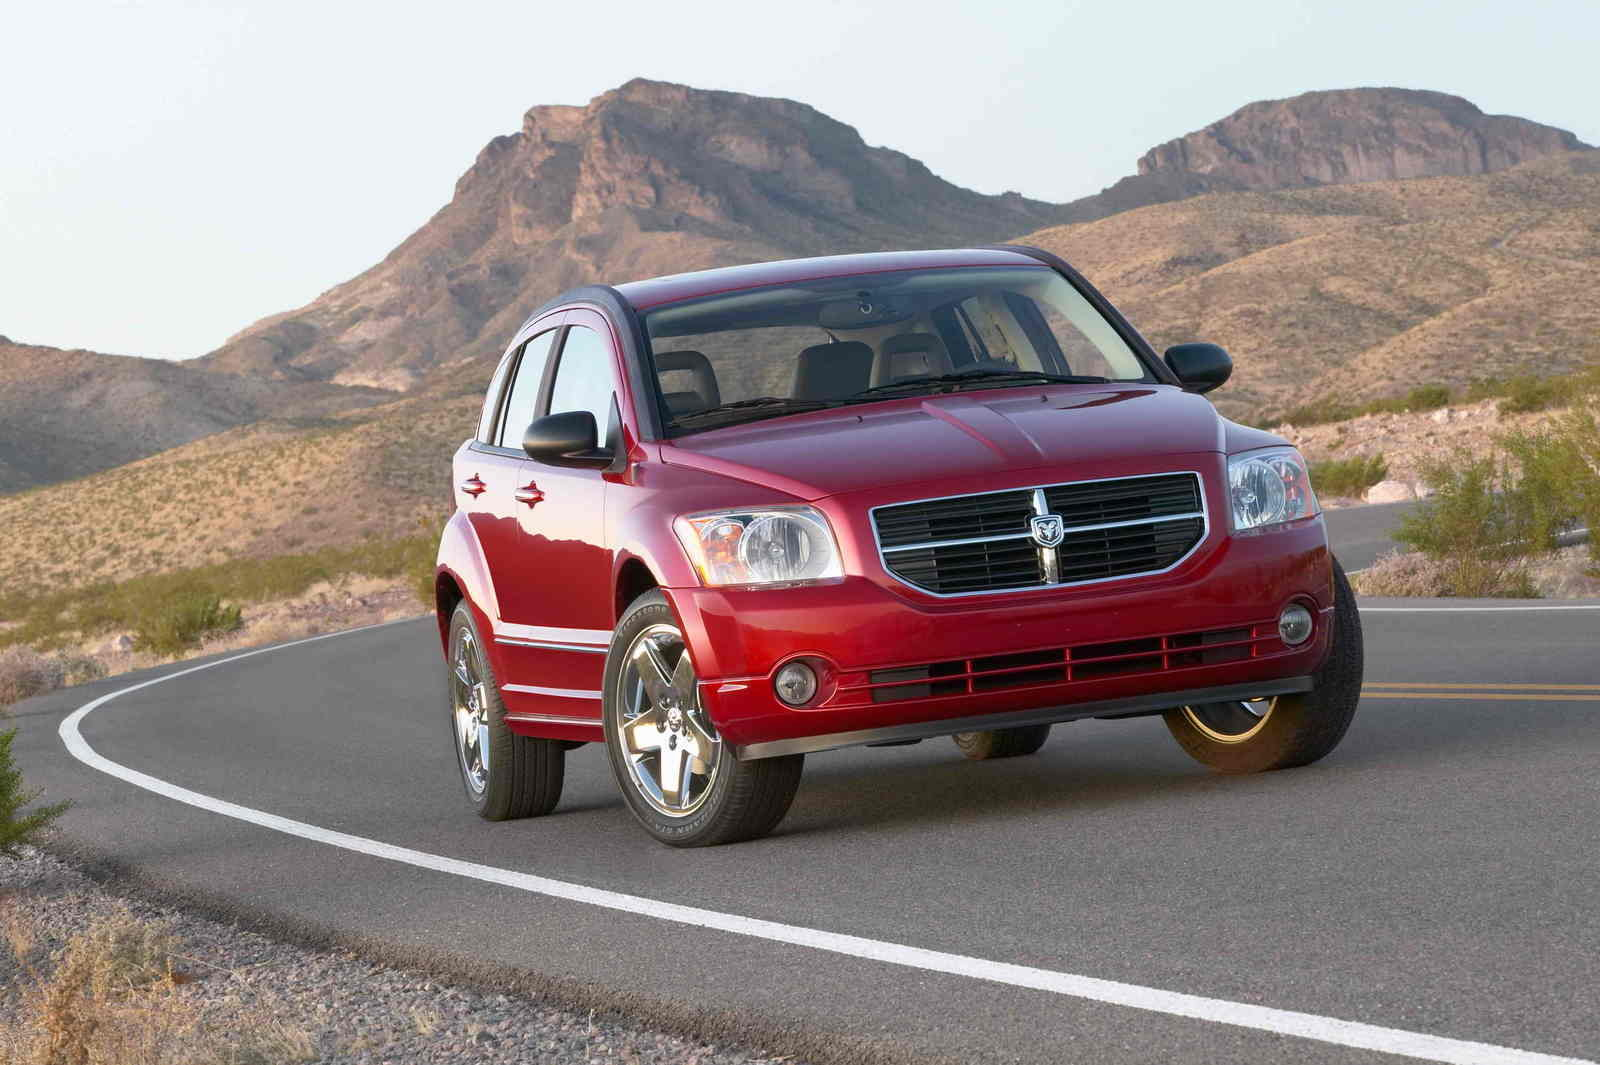 2007 dodge caliber sxt sport picture 108588 car review top speed. Cars Review. Best American Auto & Cars Review